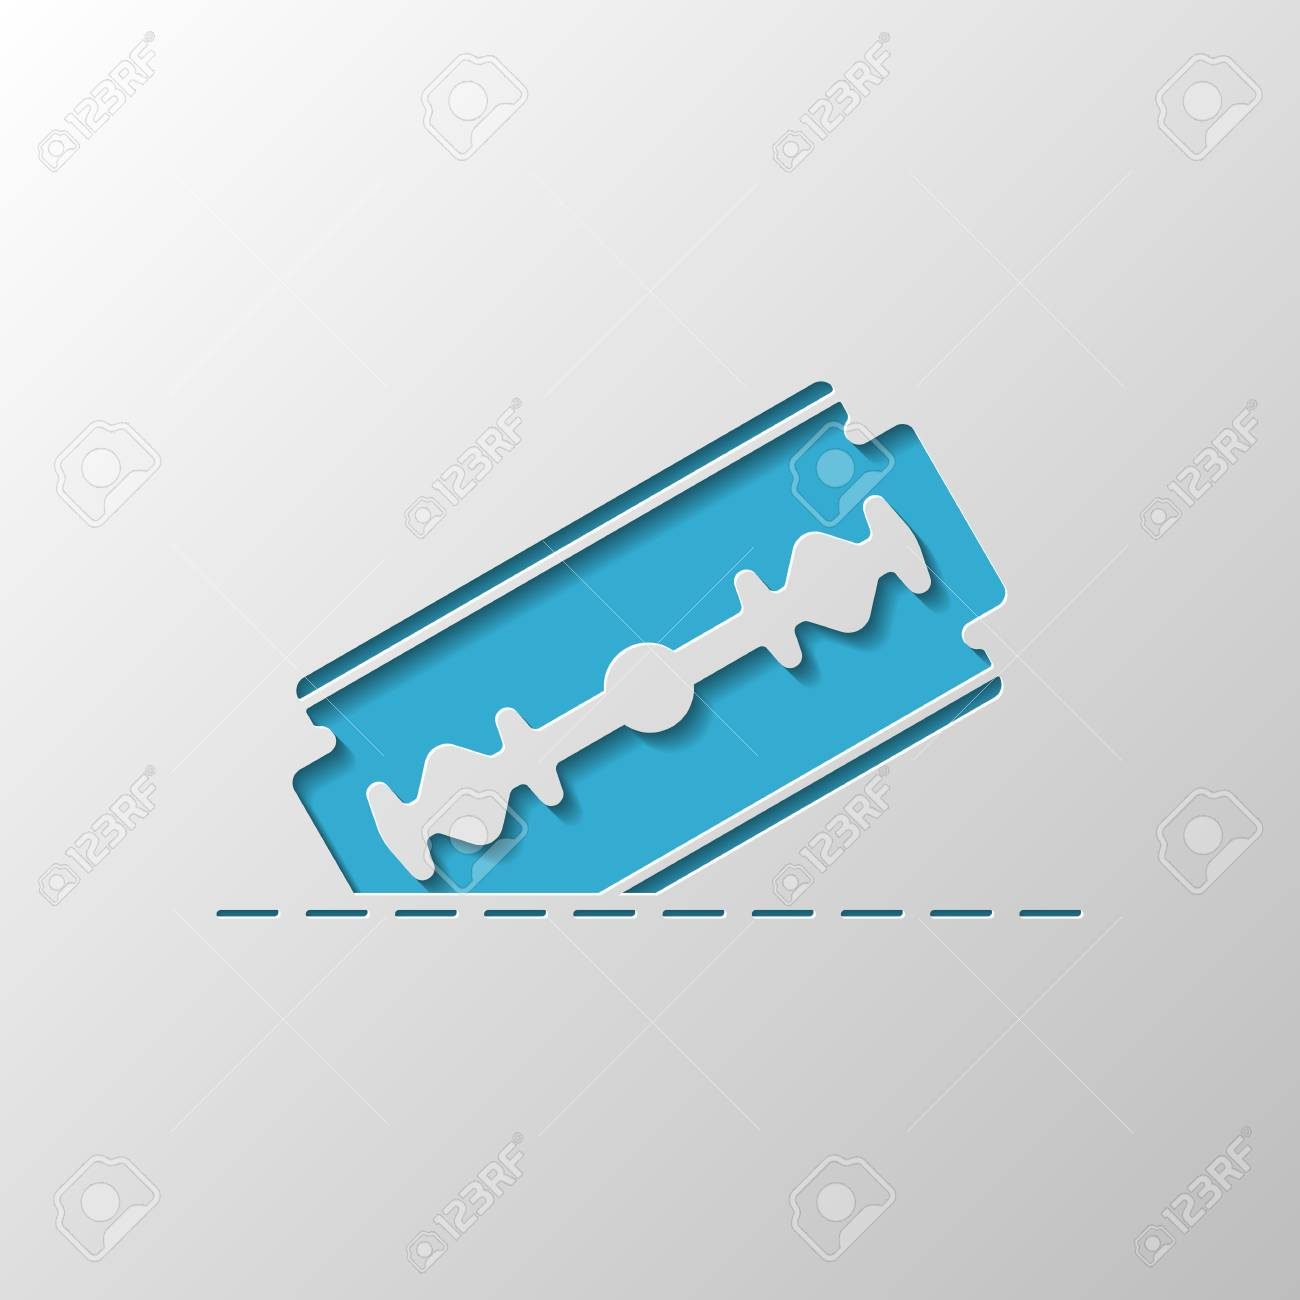 razor blade and cutting line. simple icon. Paper design. Cutted symbol with shadow - 111834509